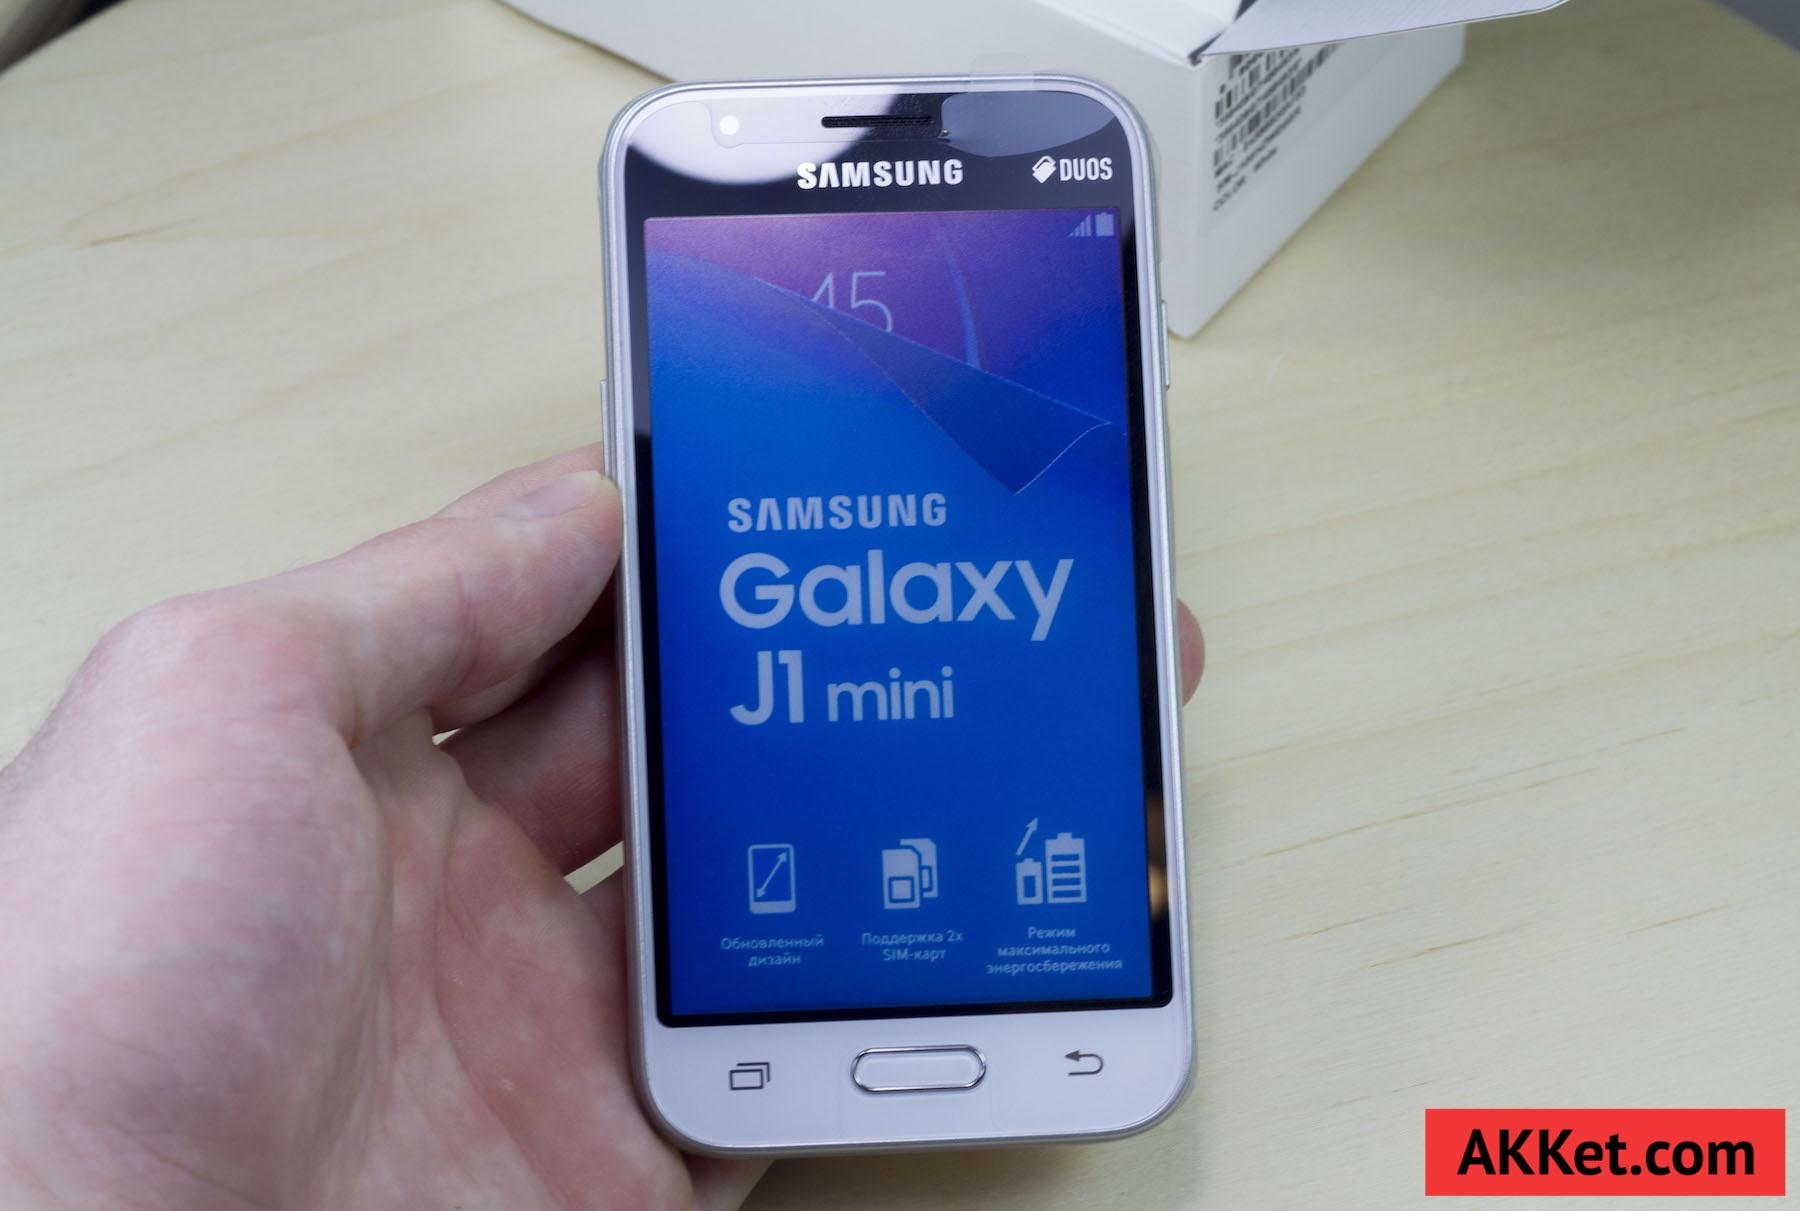 Samsung Galaxy J1 mini Duos Android 5.1.1 Lollipop Review 8